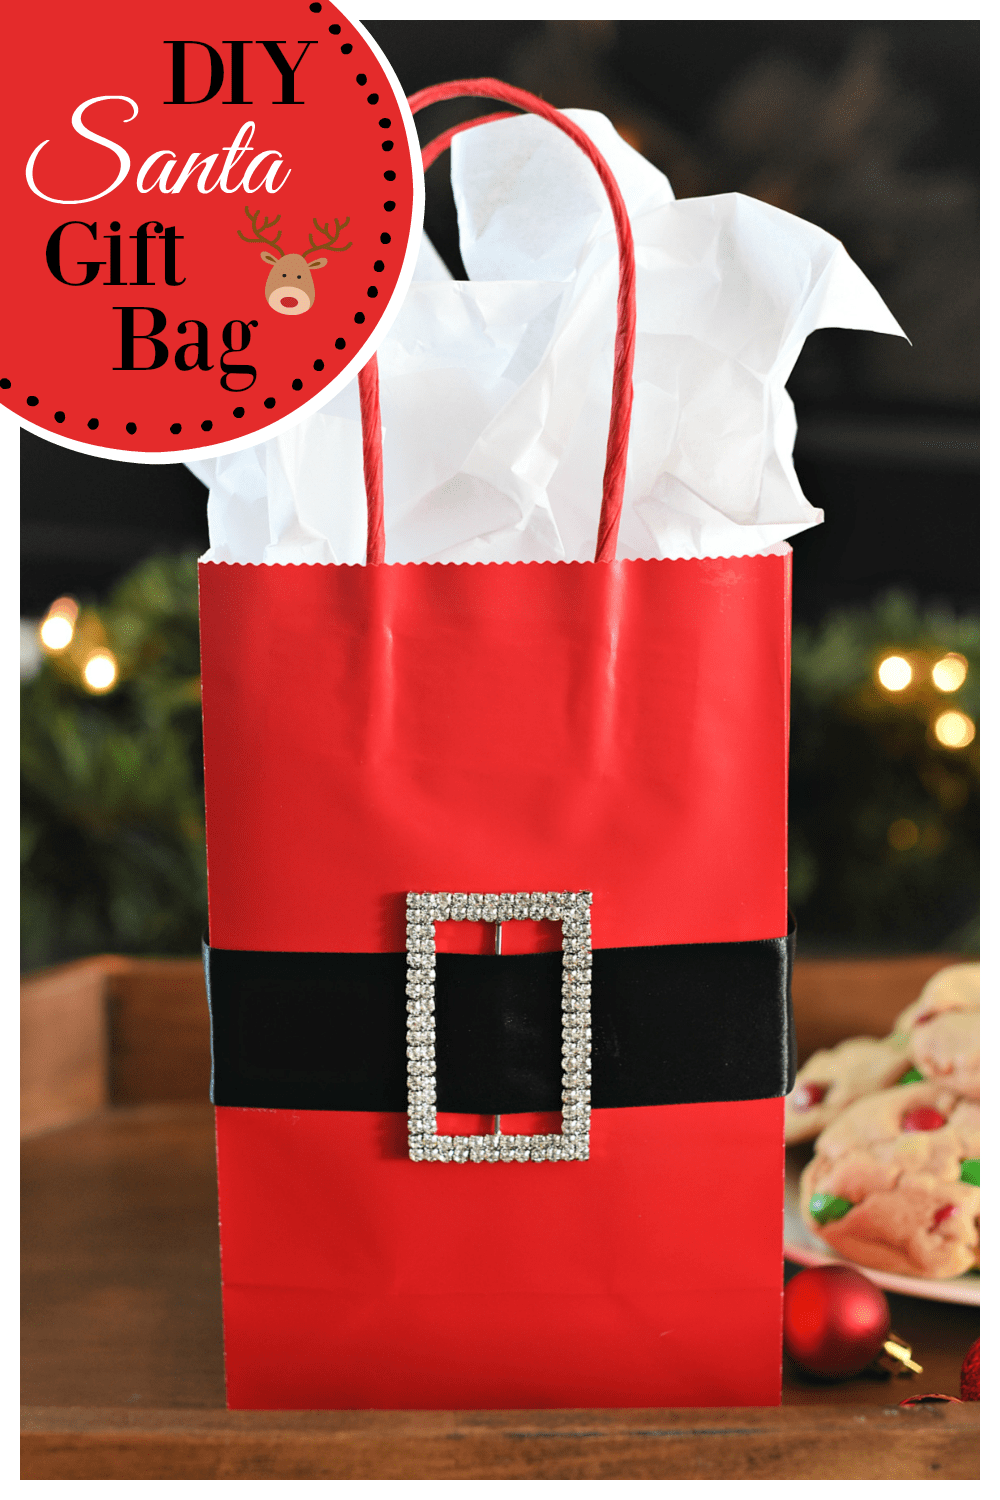 DIY Sant Belt Gift Bag. This fun and simple gift bag is the perfect way to wrap up your Christmas gift. #giftwrap #giftbag #santabag